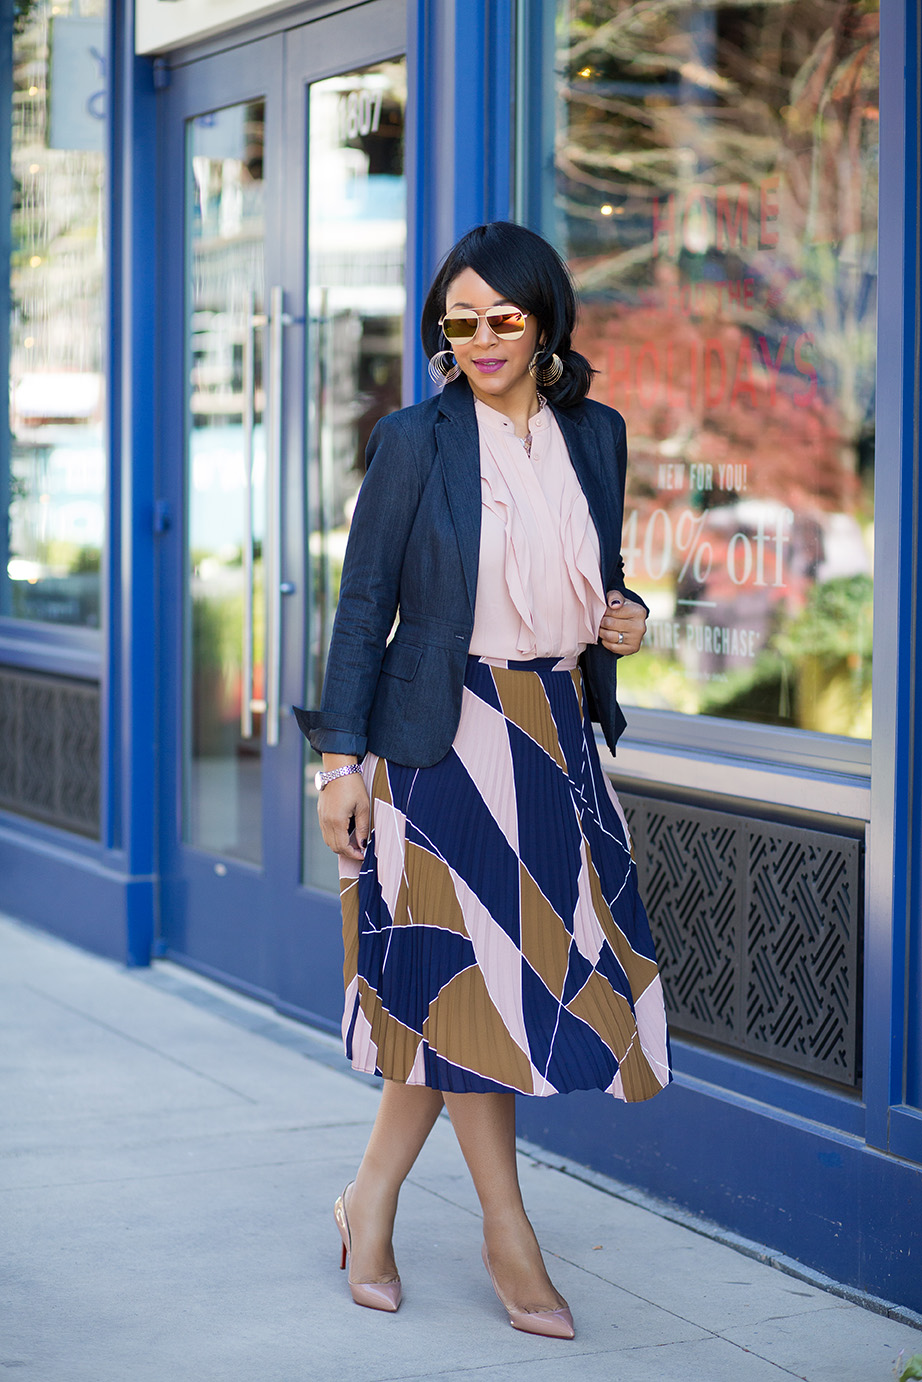 What I'm Wearing: Business Casual With a Kick, zeroUV Two-Toned Split Mirror Sunglasses, Waved Layer Dangle Earrings, Charming Charlie Divine Druzy Necklace OS Rose Gold, 7th Avenue Design Studio Two-Button Jacket - Modern Fit - Grand Sapphire, Ann Taylor Ruffled Shell, Ann Taylor Mosaic Pleated Skirt, Christian Louboutin 'Pigalle Follies' nude Pointy Toe Pump